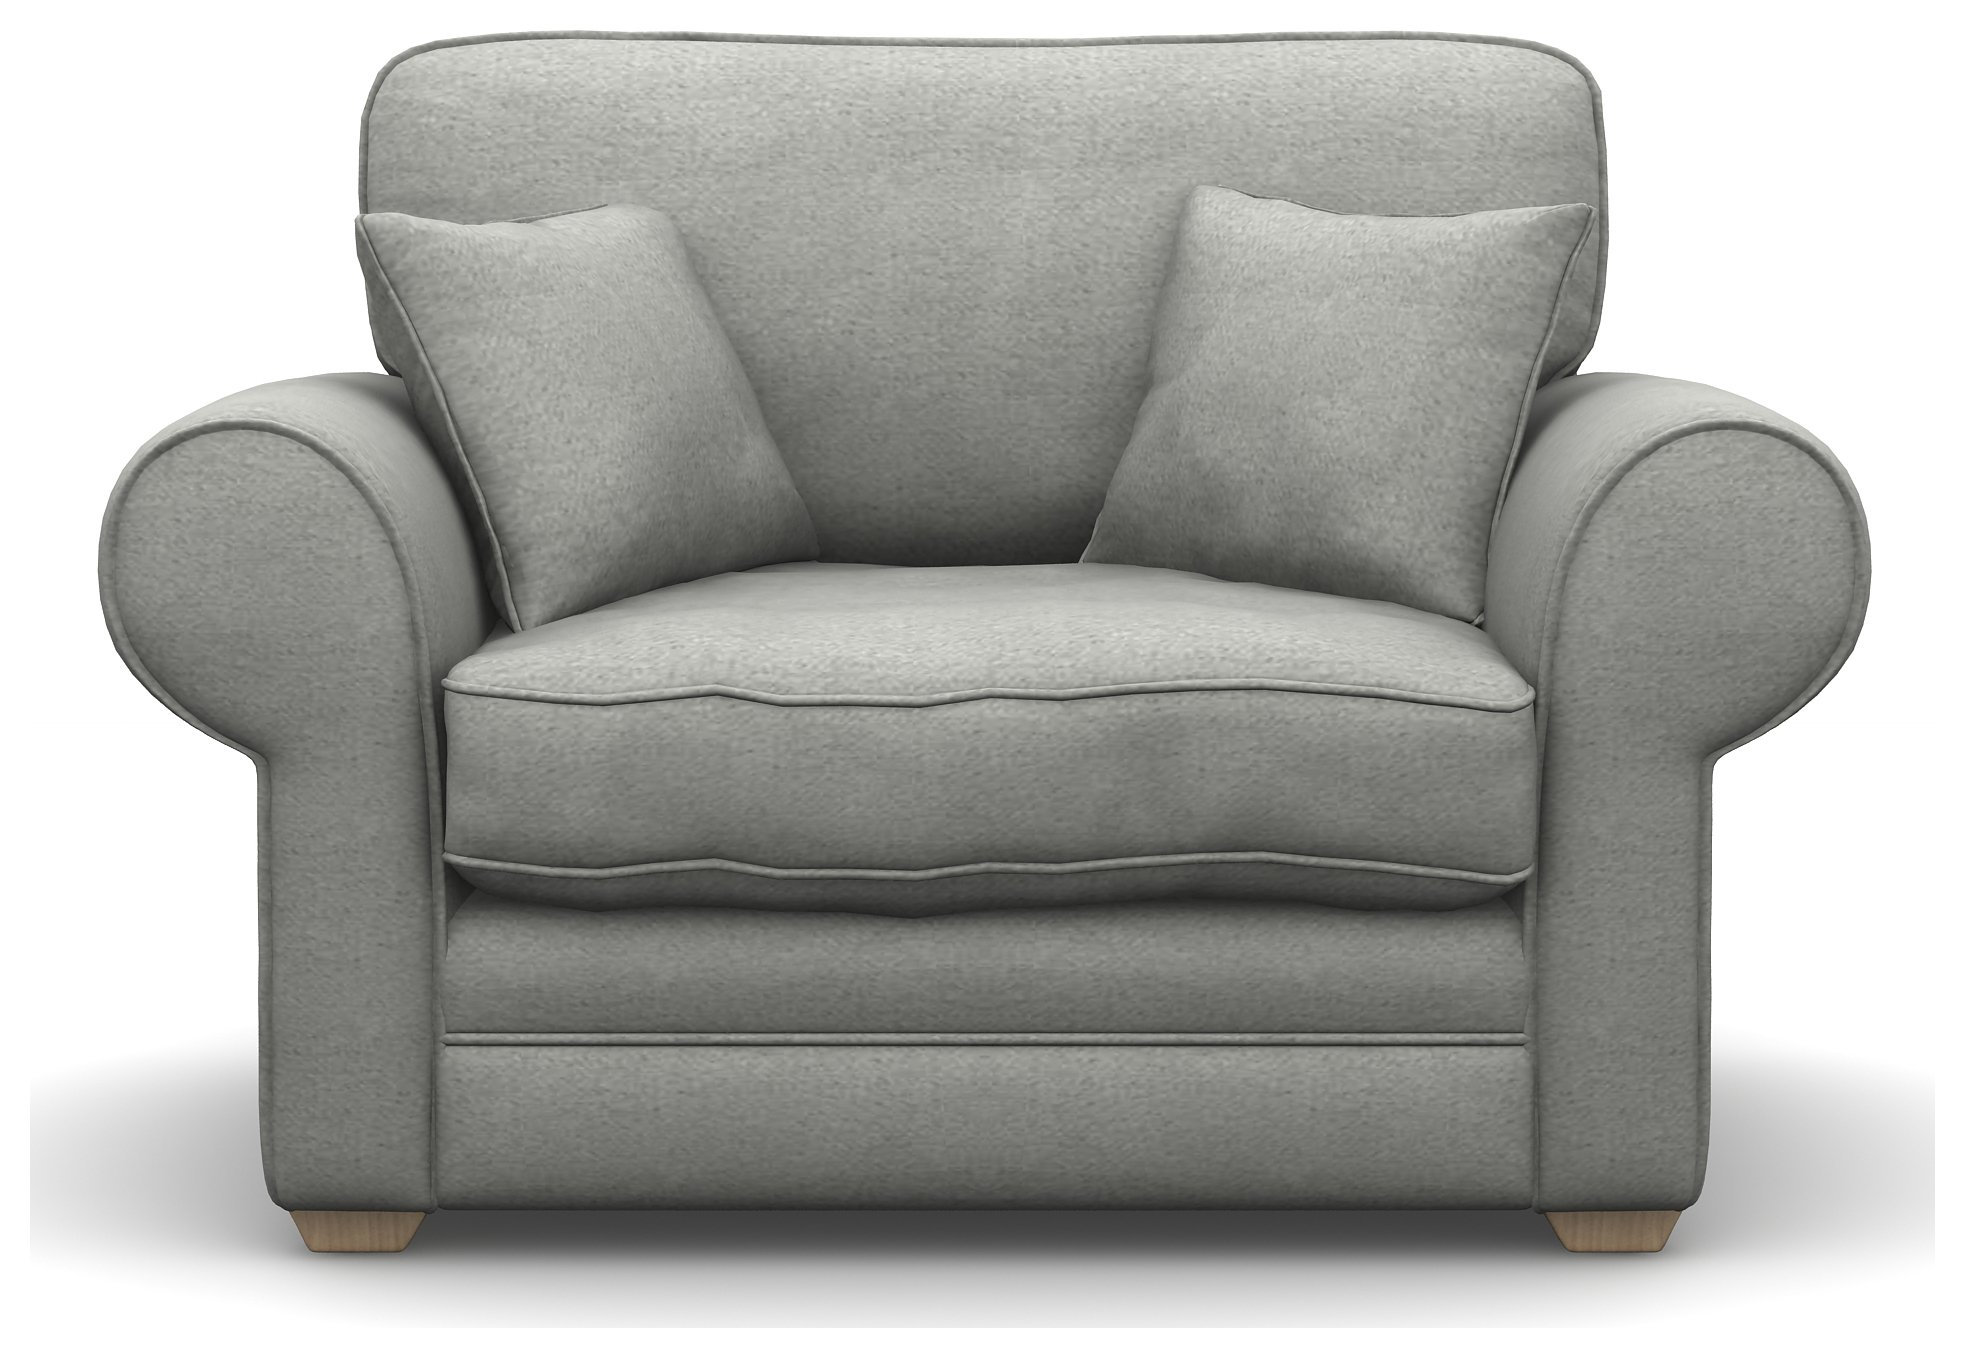 Heart of House Chedworth Fabric Cuddle Chair - Grey With Wooden Feet